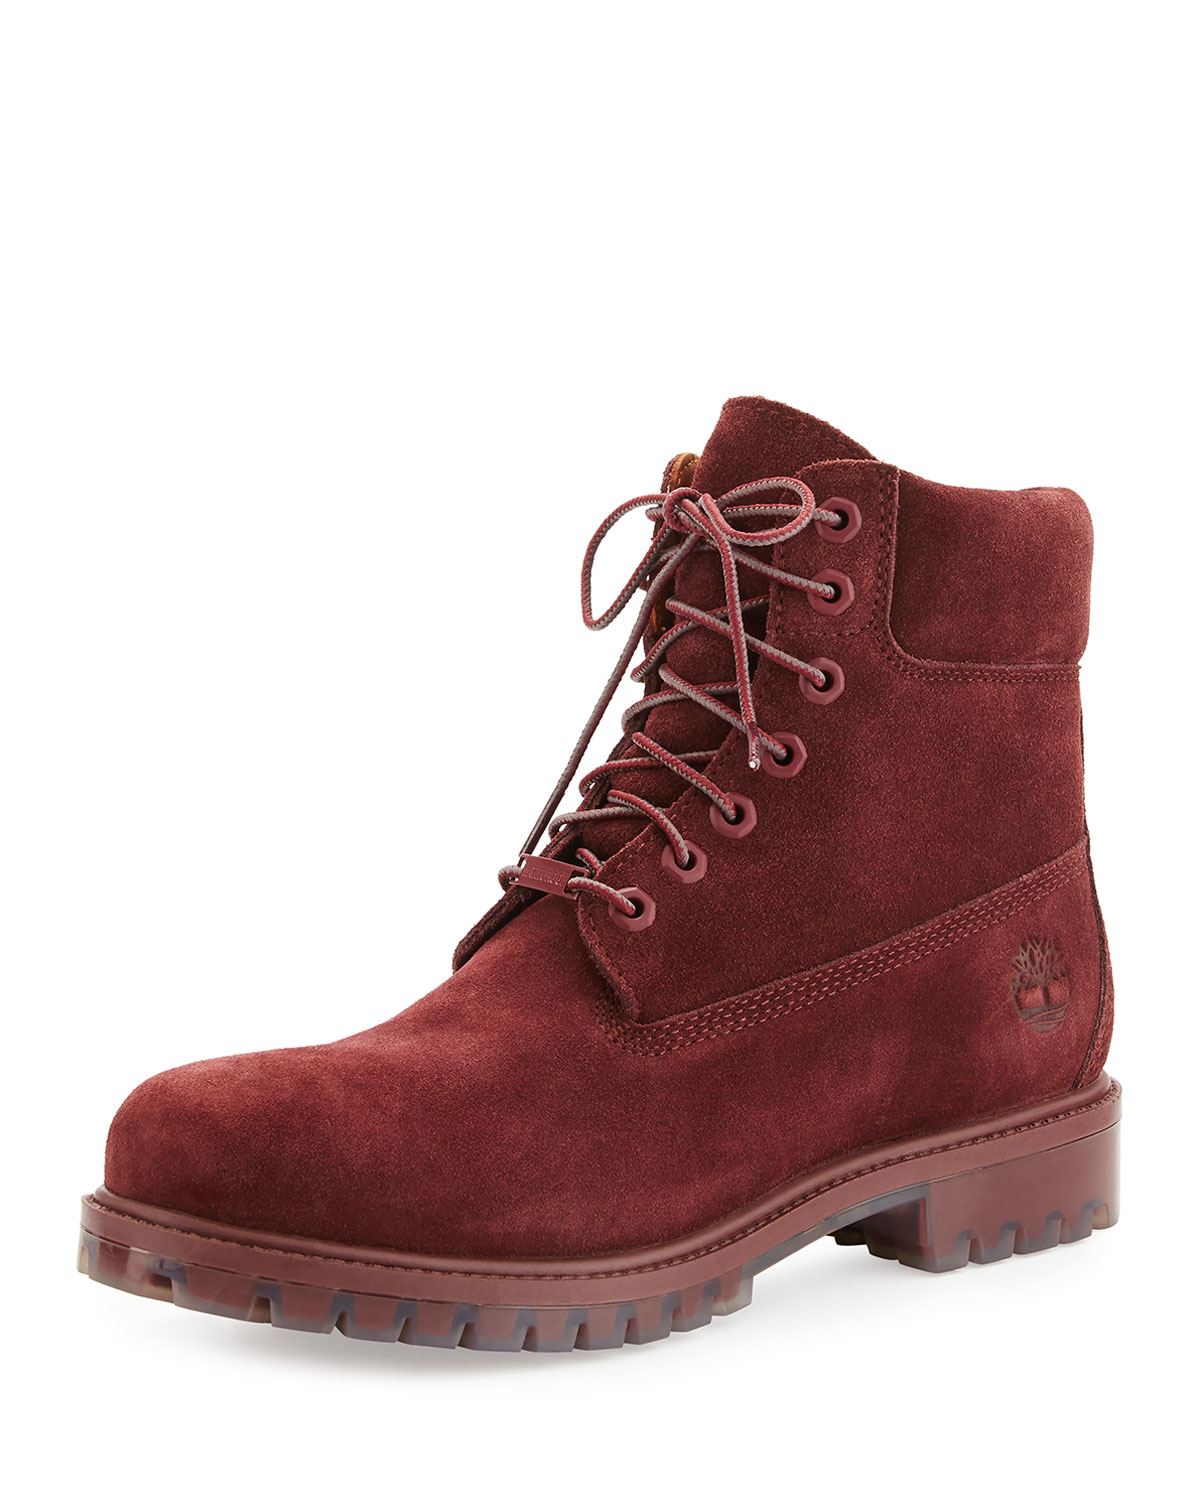 246704da0719 Timberland autumn leaf jpg 1200x1500 Burgundy tan timberlands